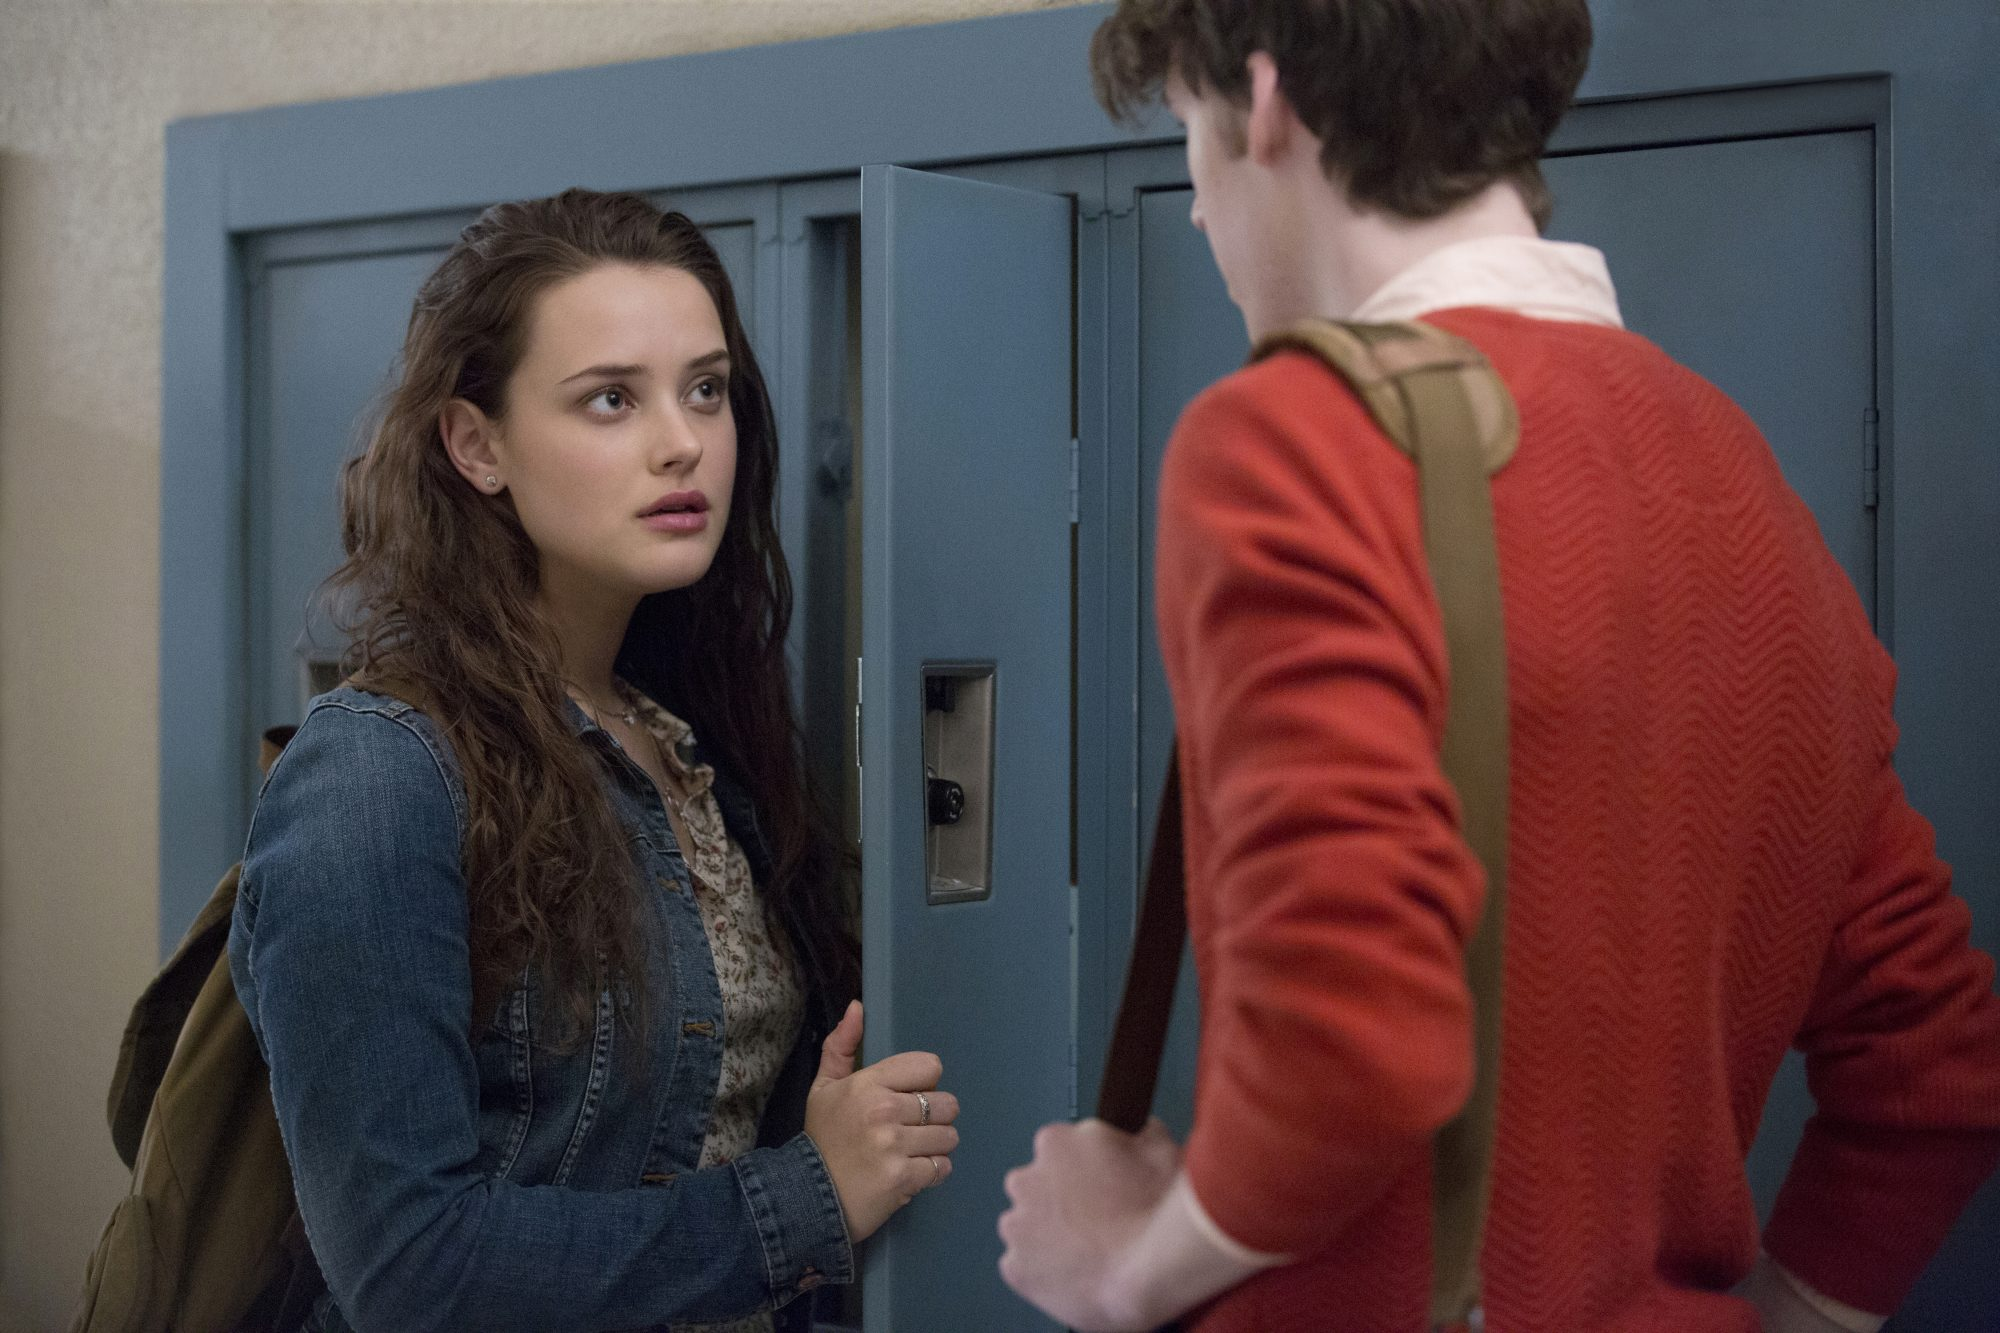 Katherine Langford as Hannah Baker in '13 Reasons Why'